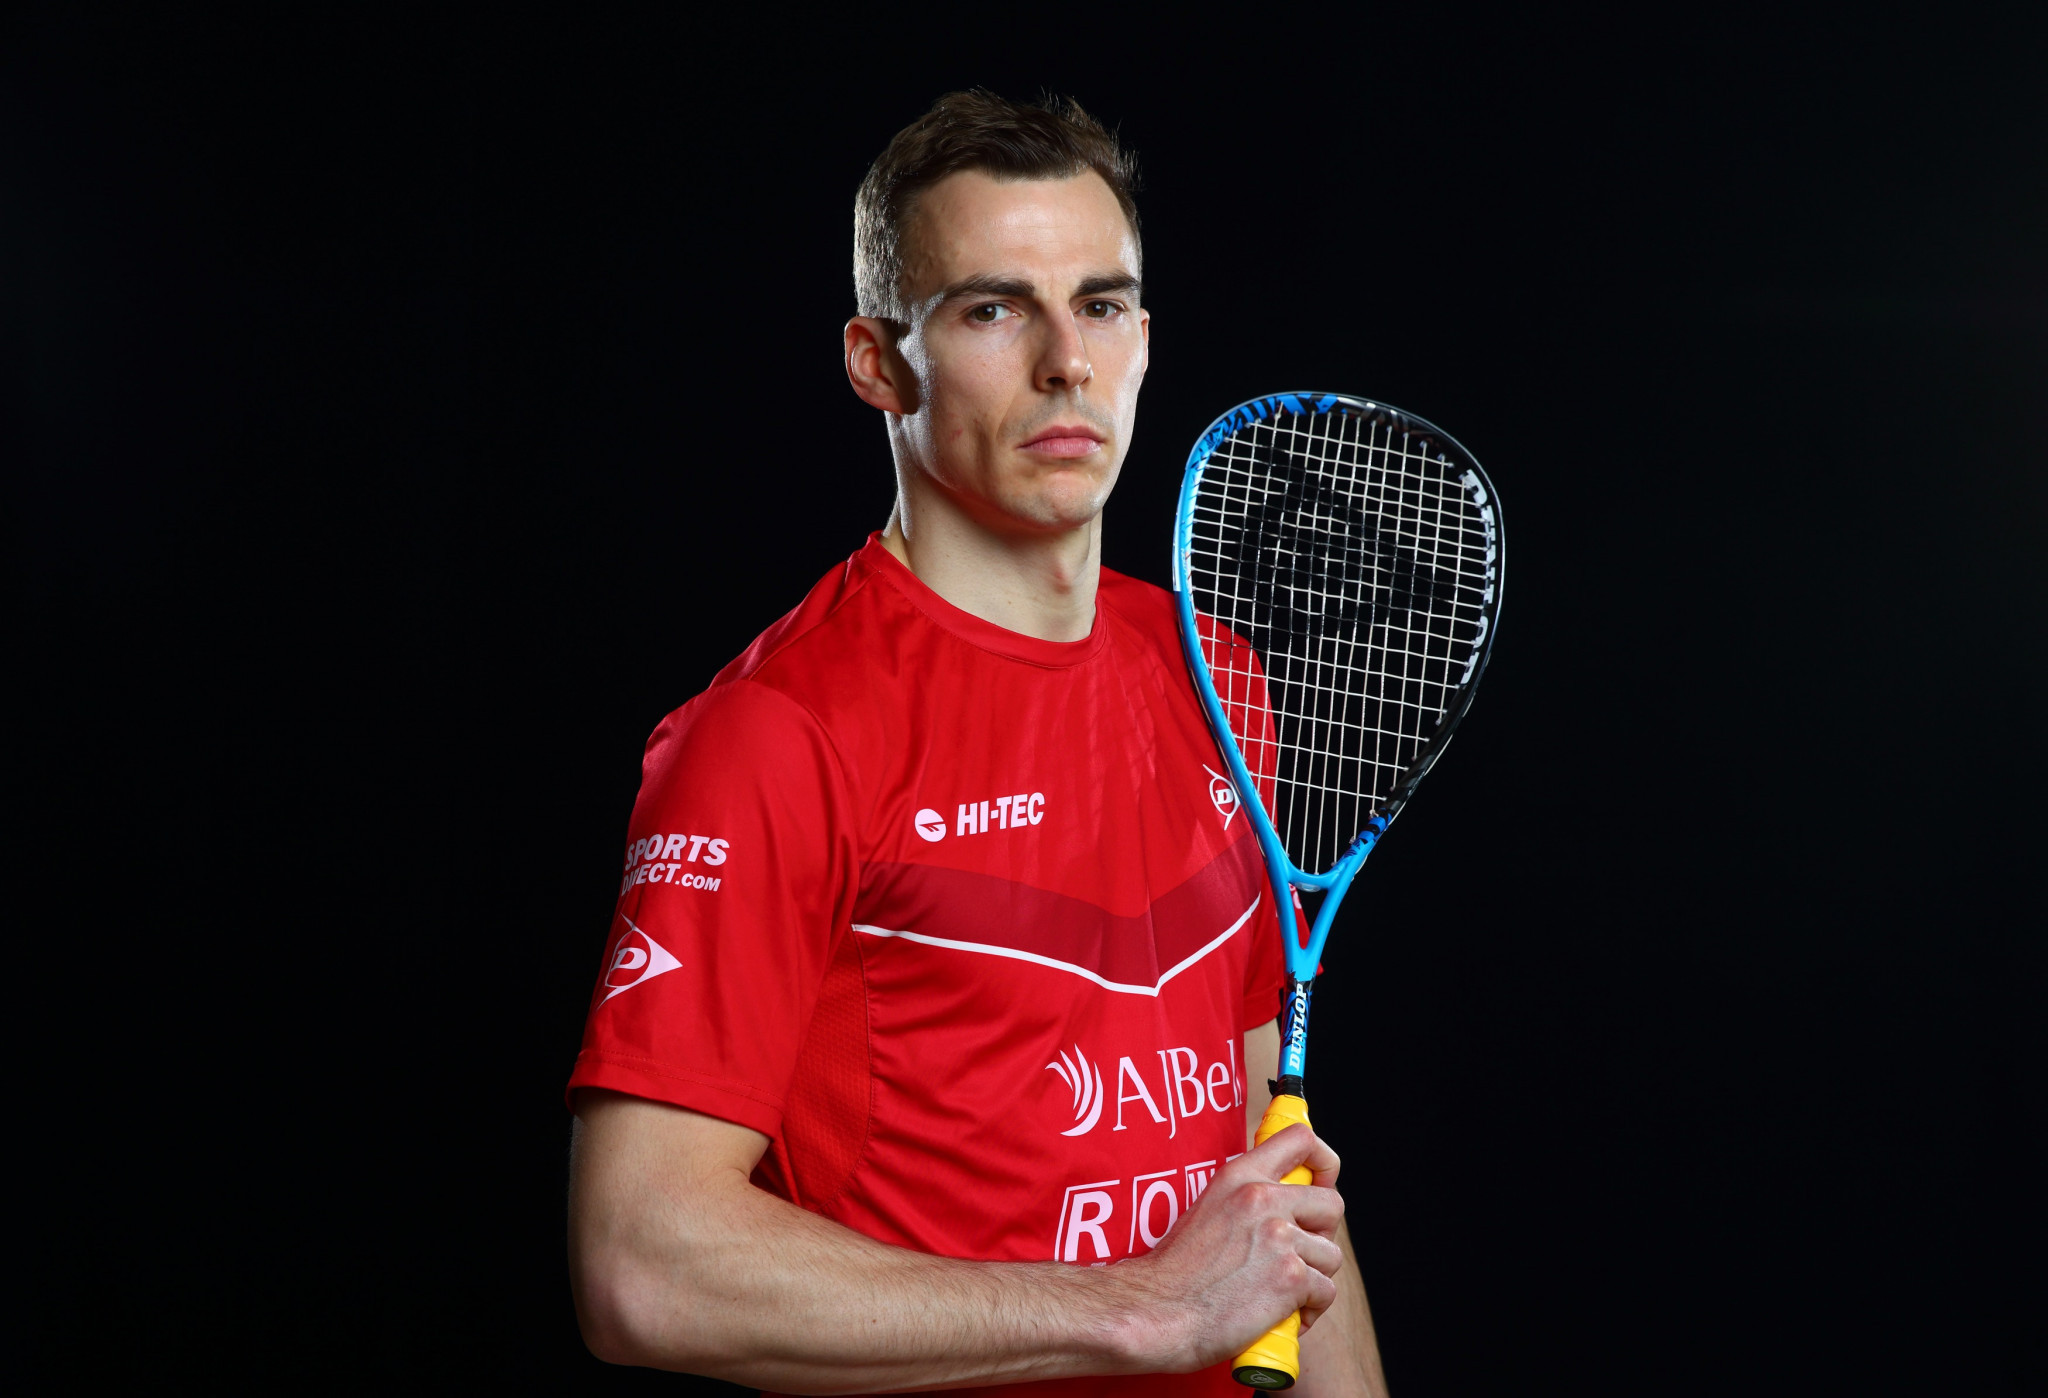 Squash star Matthew set for exhibition to begin final year before retirement